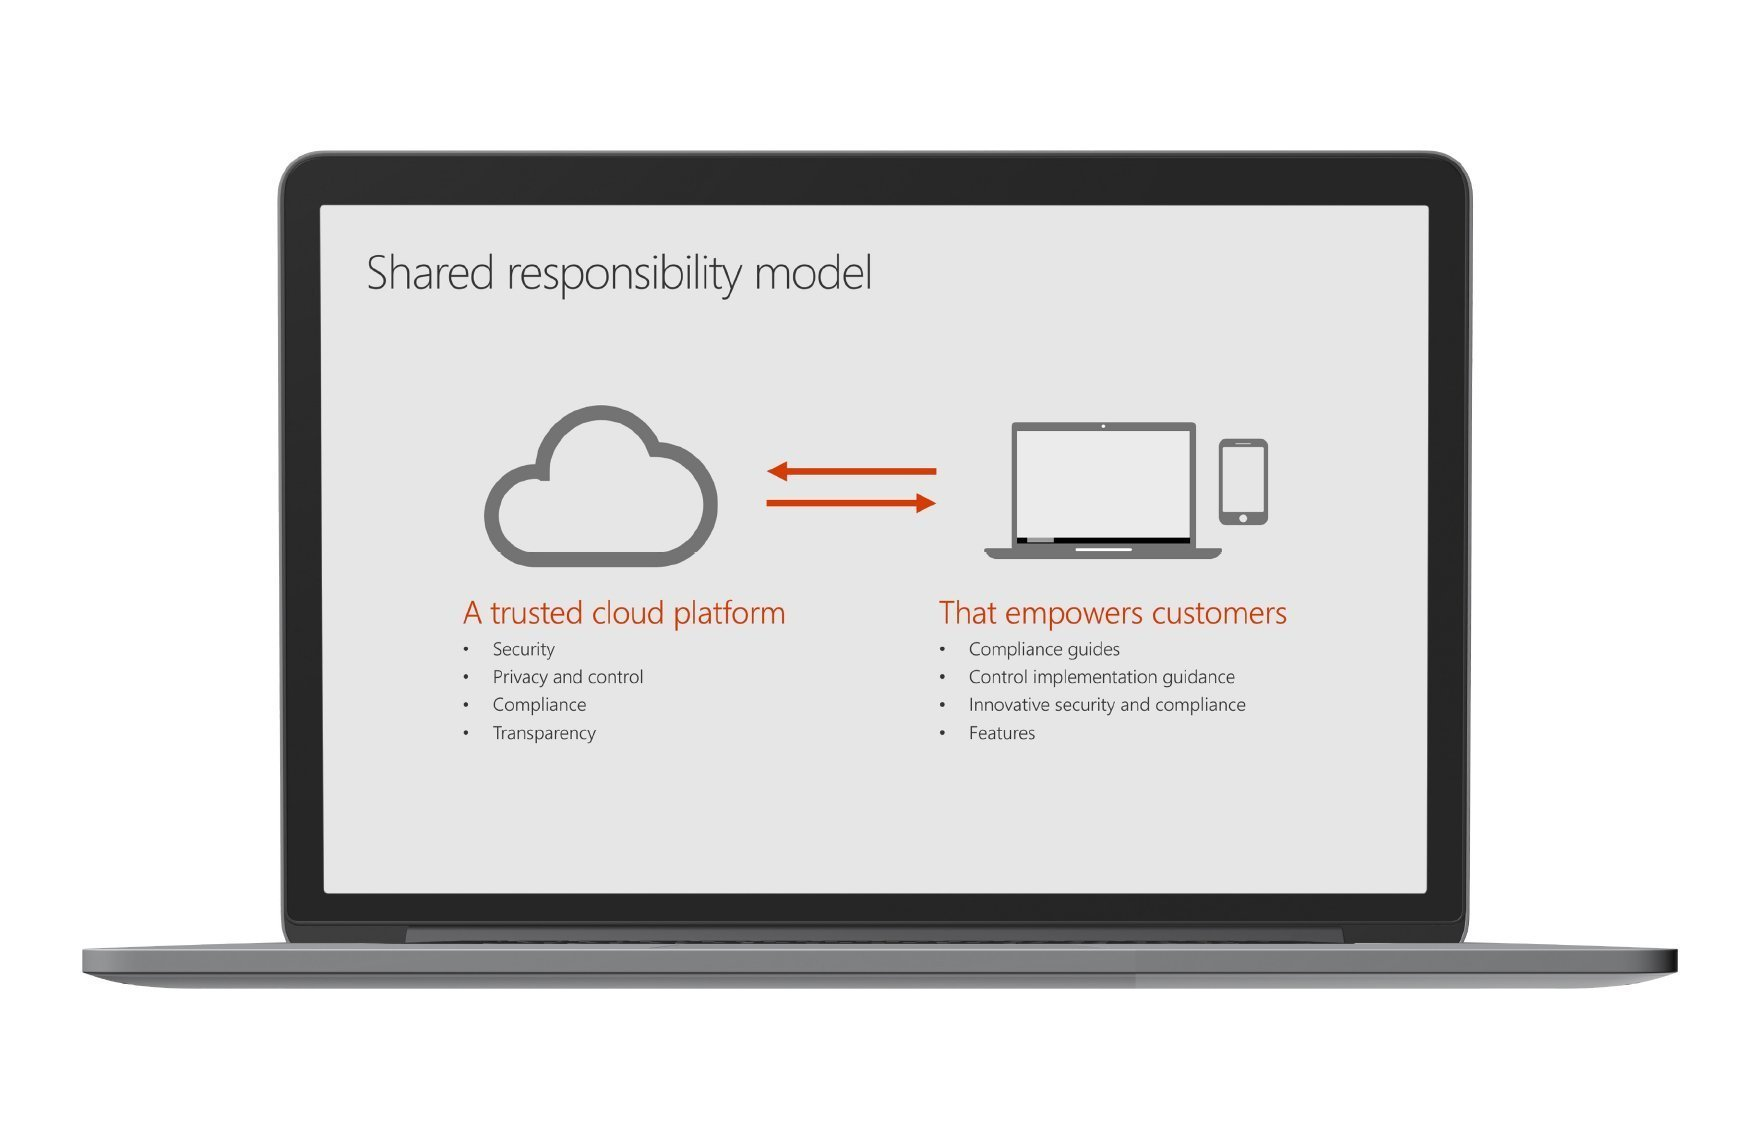 Microsoft Office shared responsibility model.